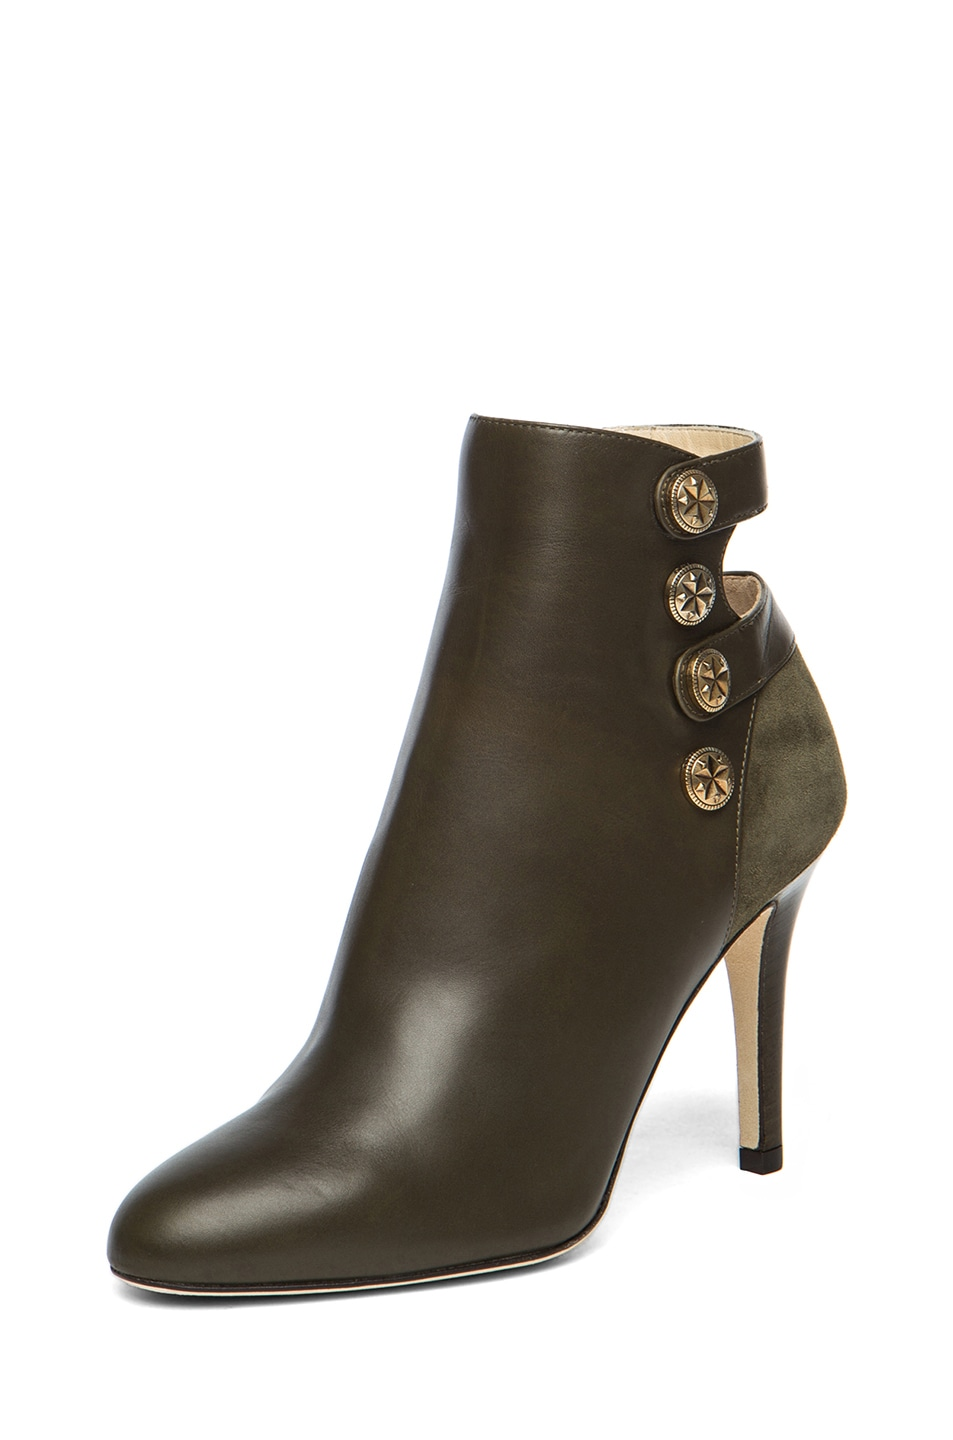 Image 2 of Jimmy Choo Troop Leather Booties in Military